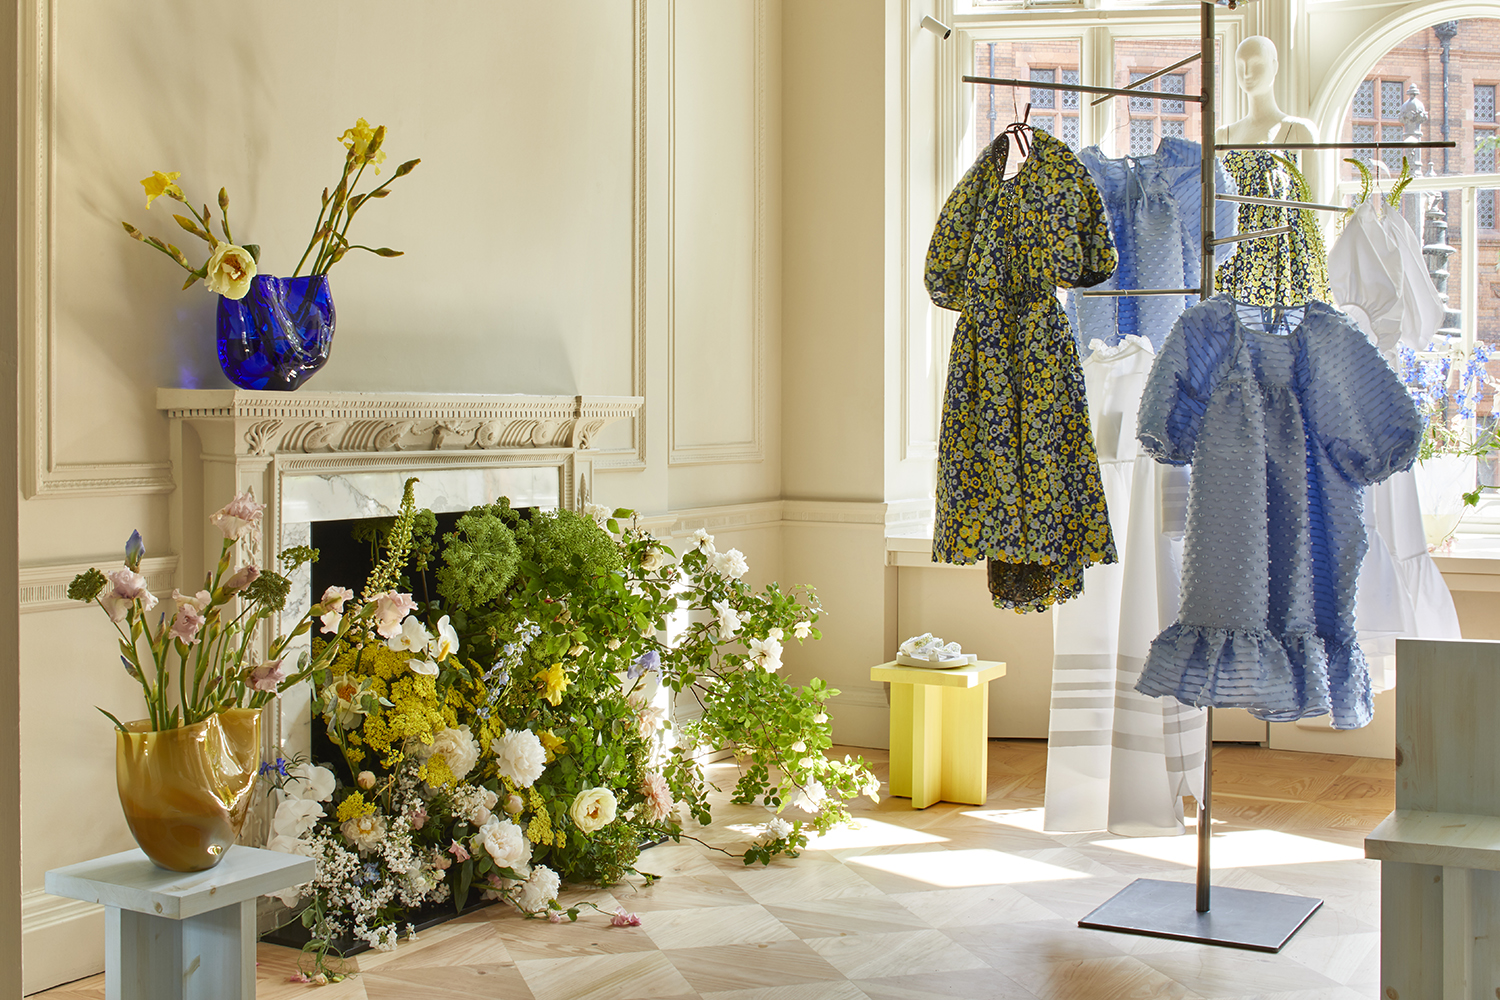 MATCHESFASHION.COM x Cecilie Bahnsen Installation at 5 Carlos Place, images by Astrid Templier (11).jpg